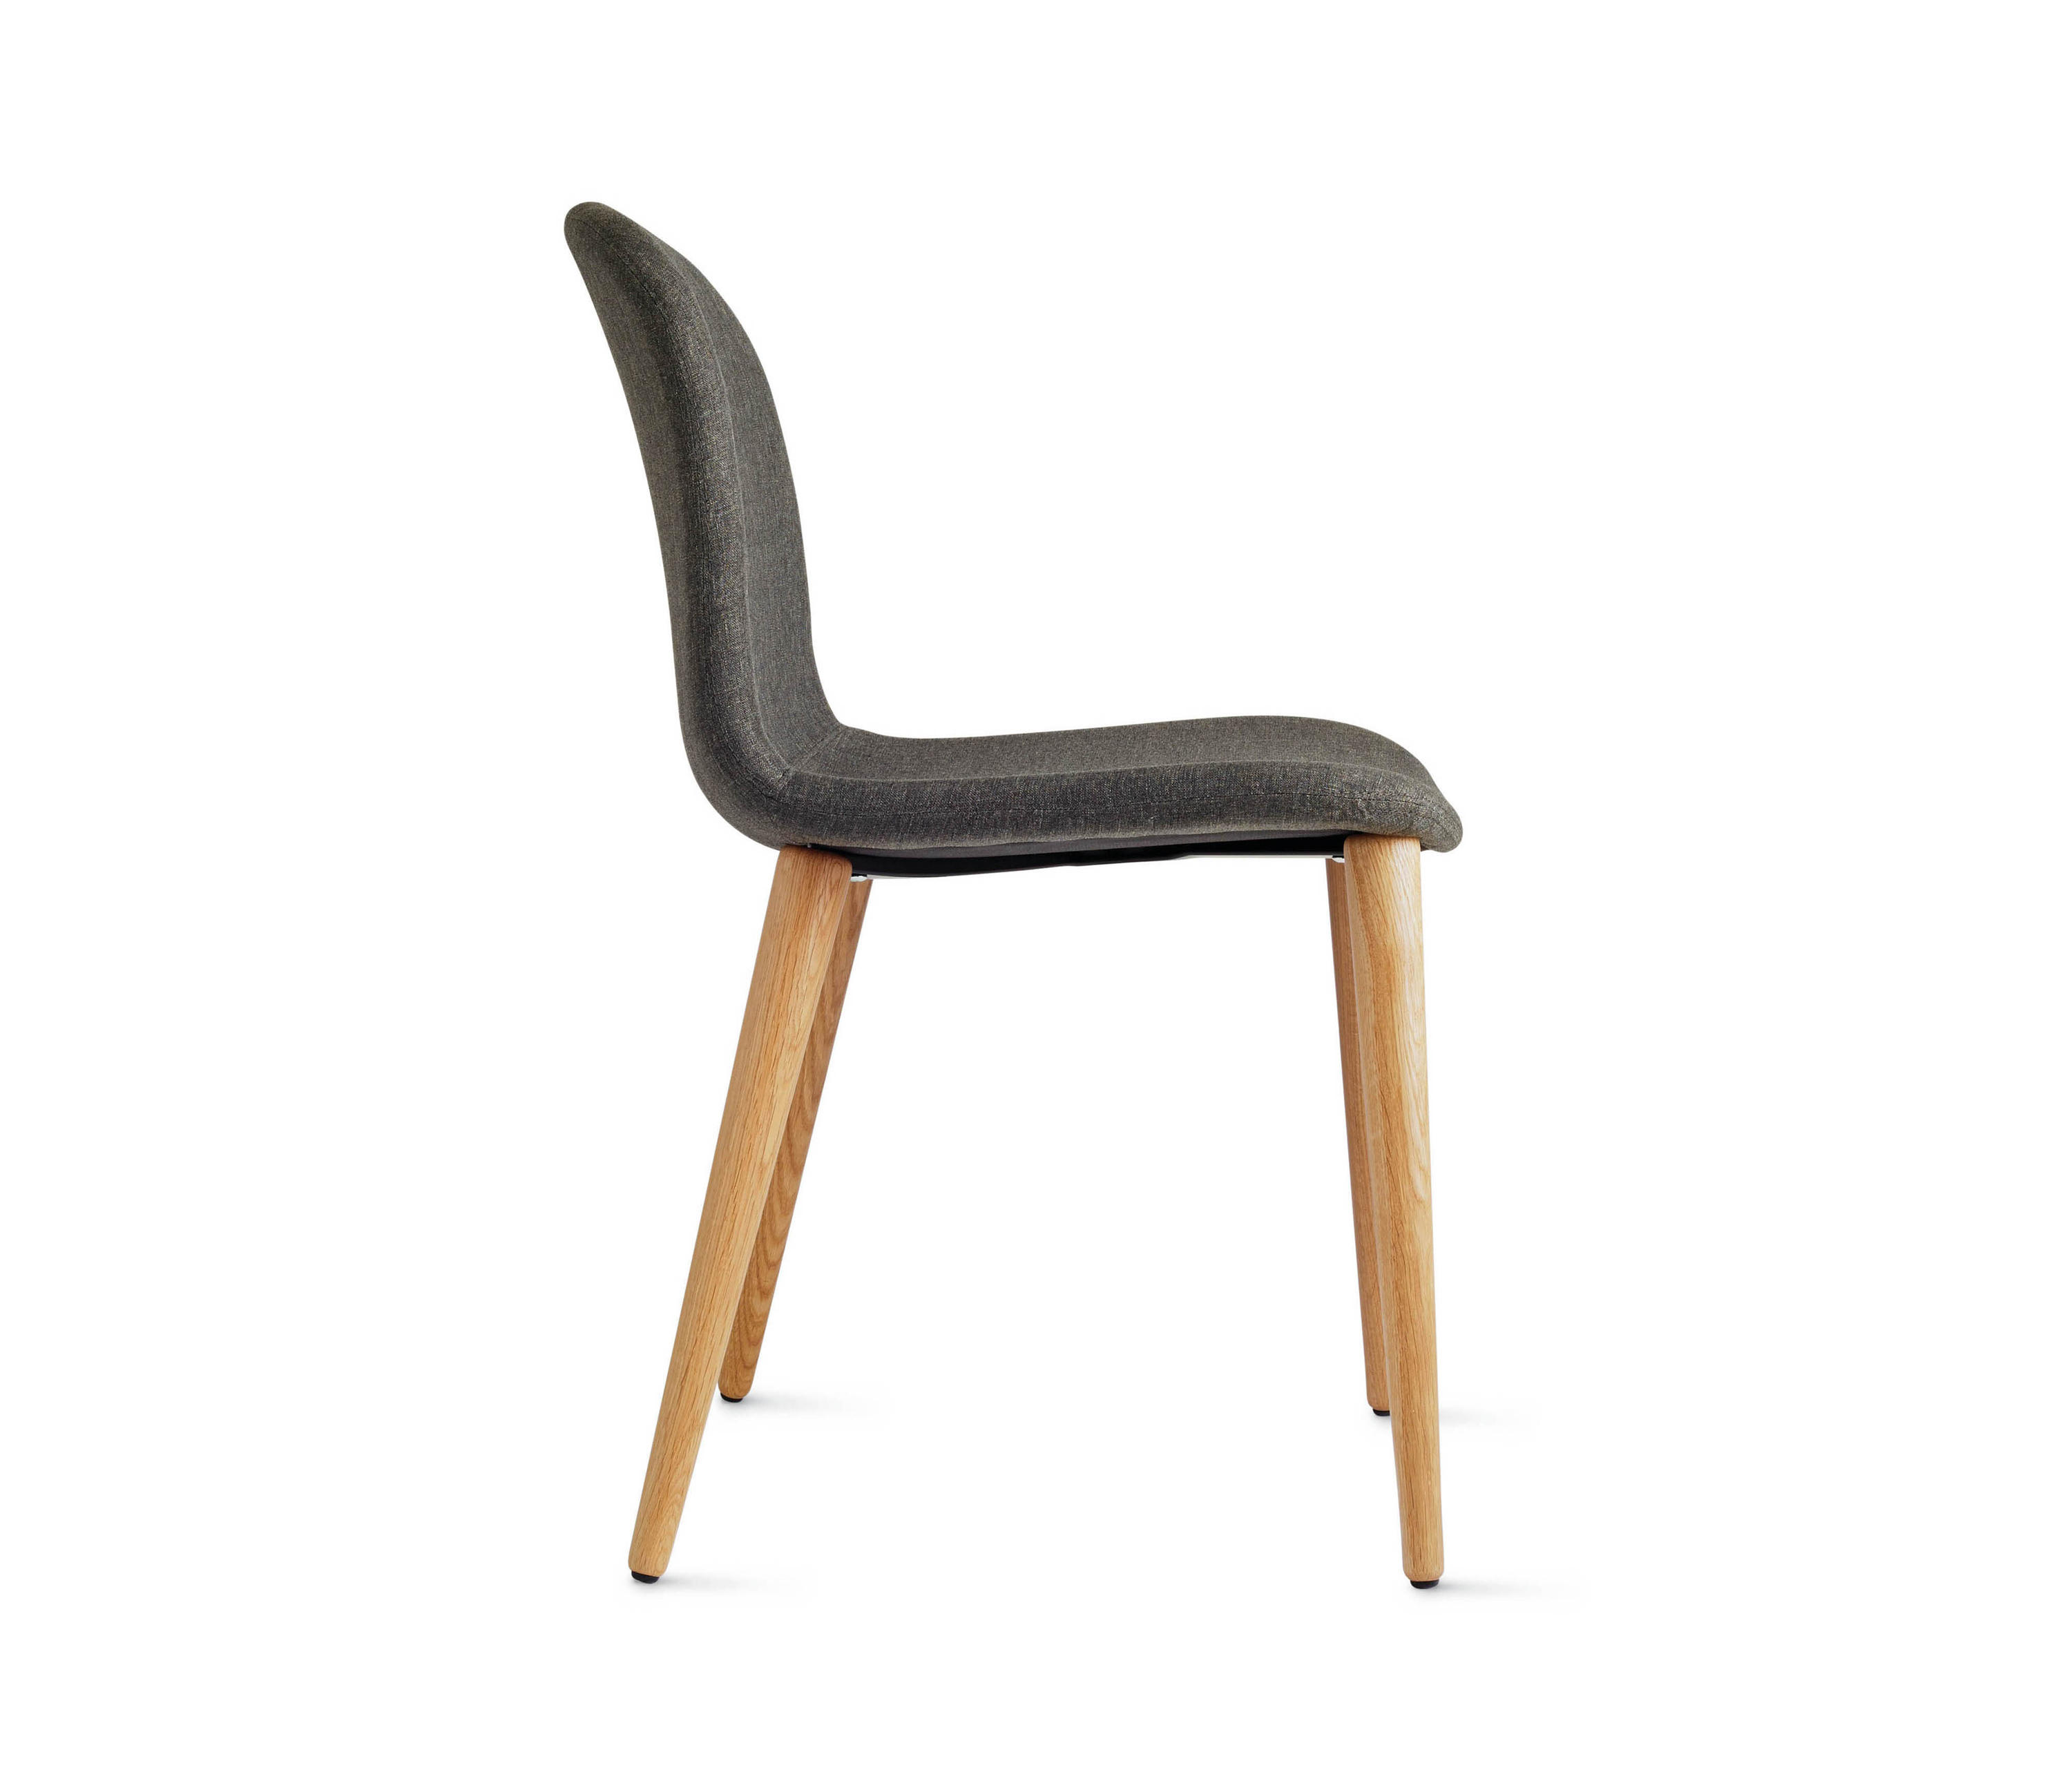 chair design within reach inglesina zuma high bacco in fabric oak legs visitors chairs side